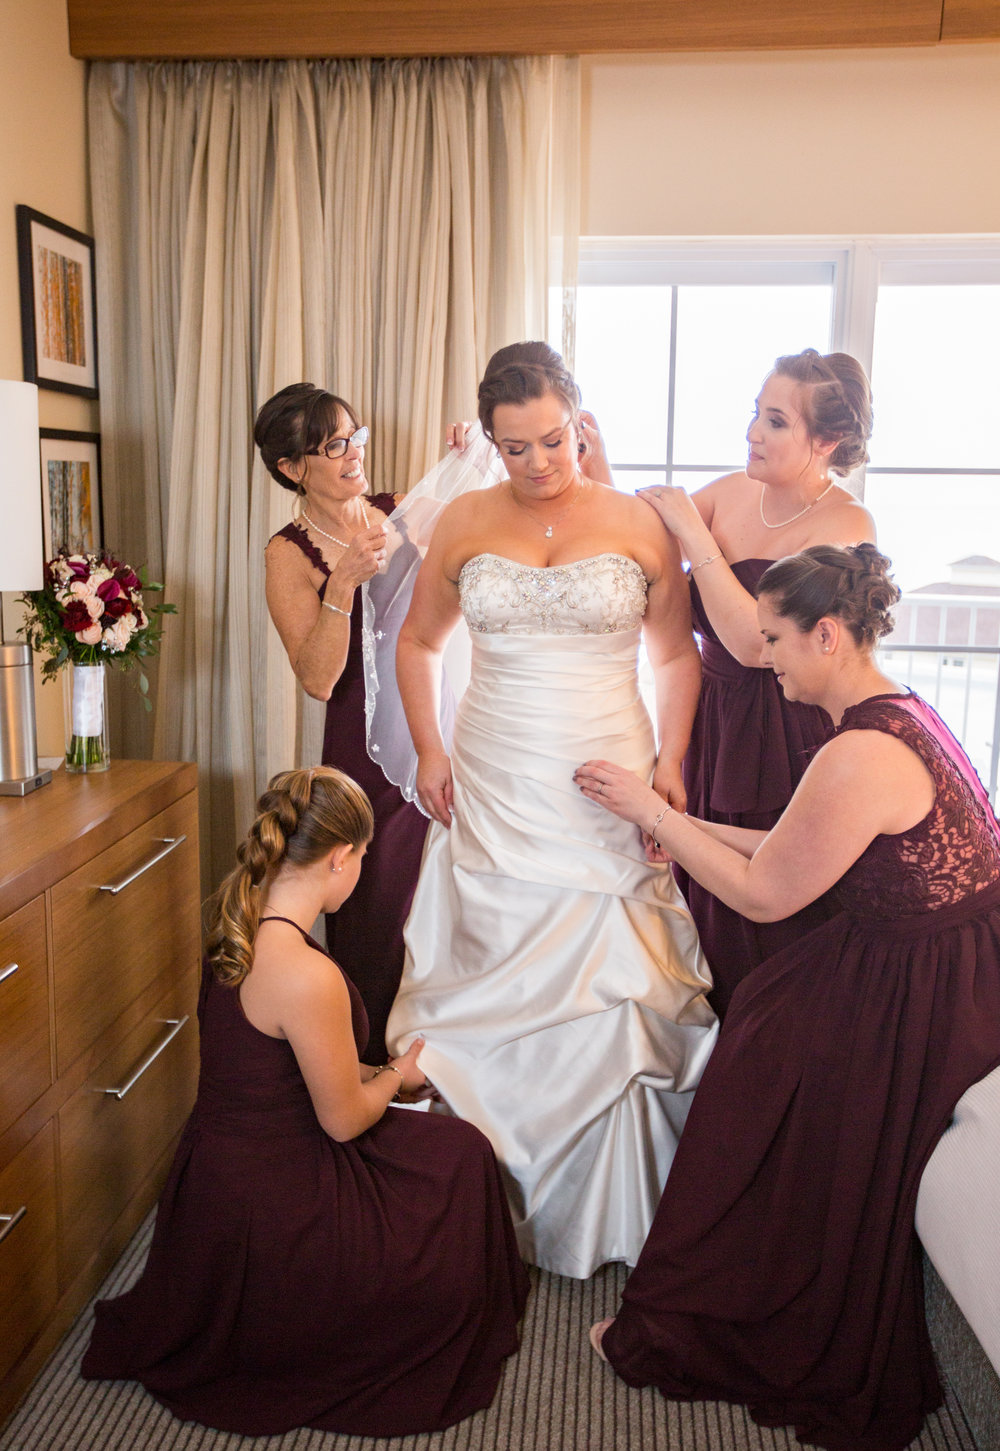 Jenna's bridesmaids help her get ready by applying some finishing touch ups.